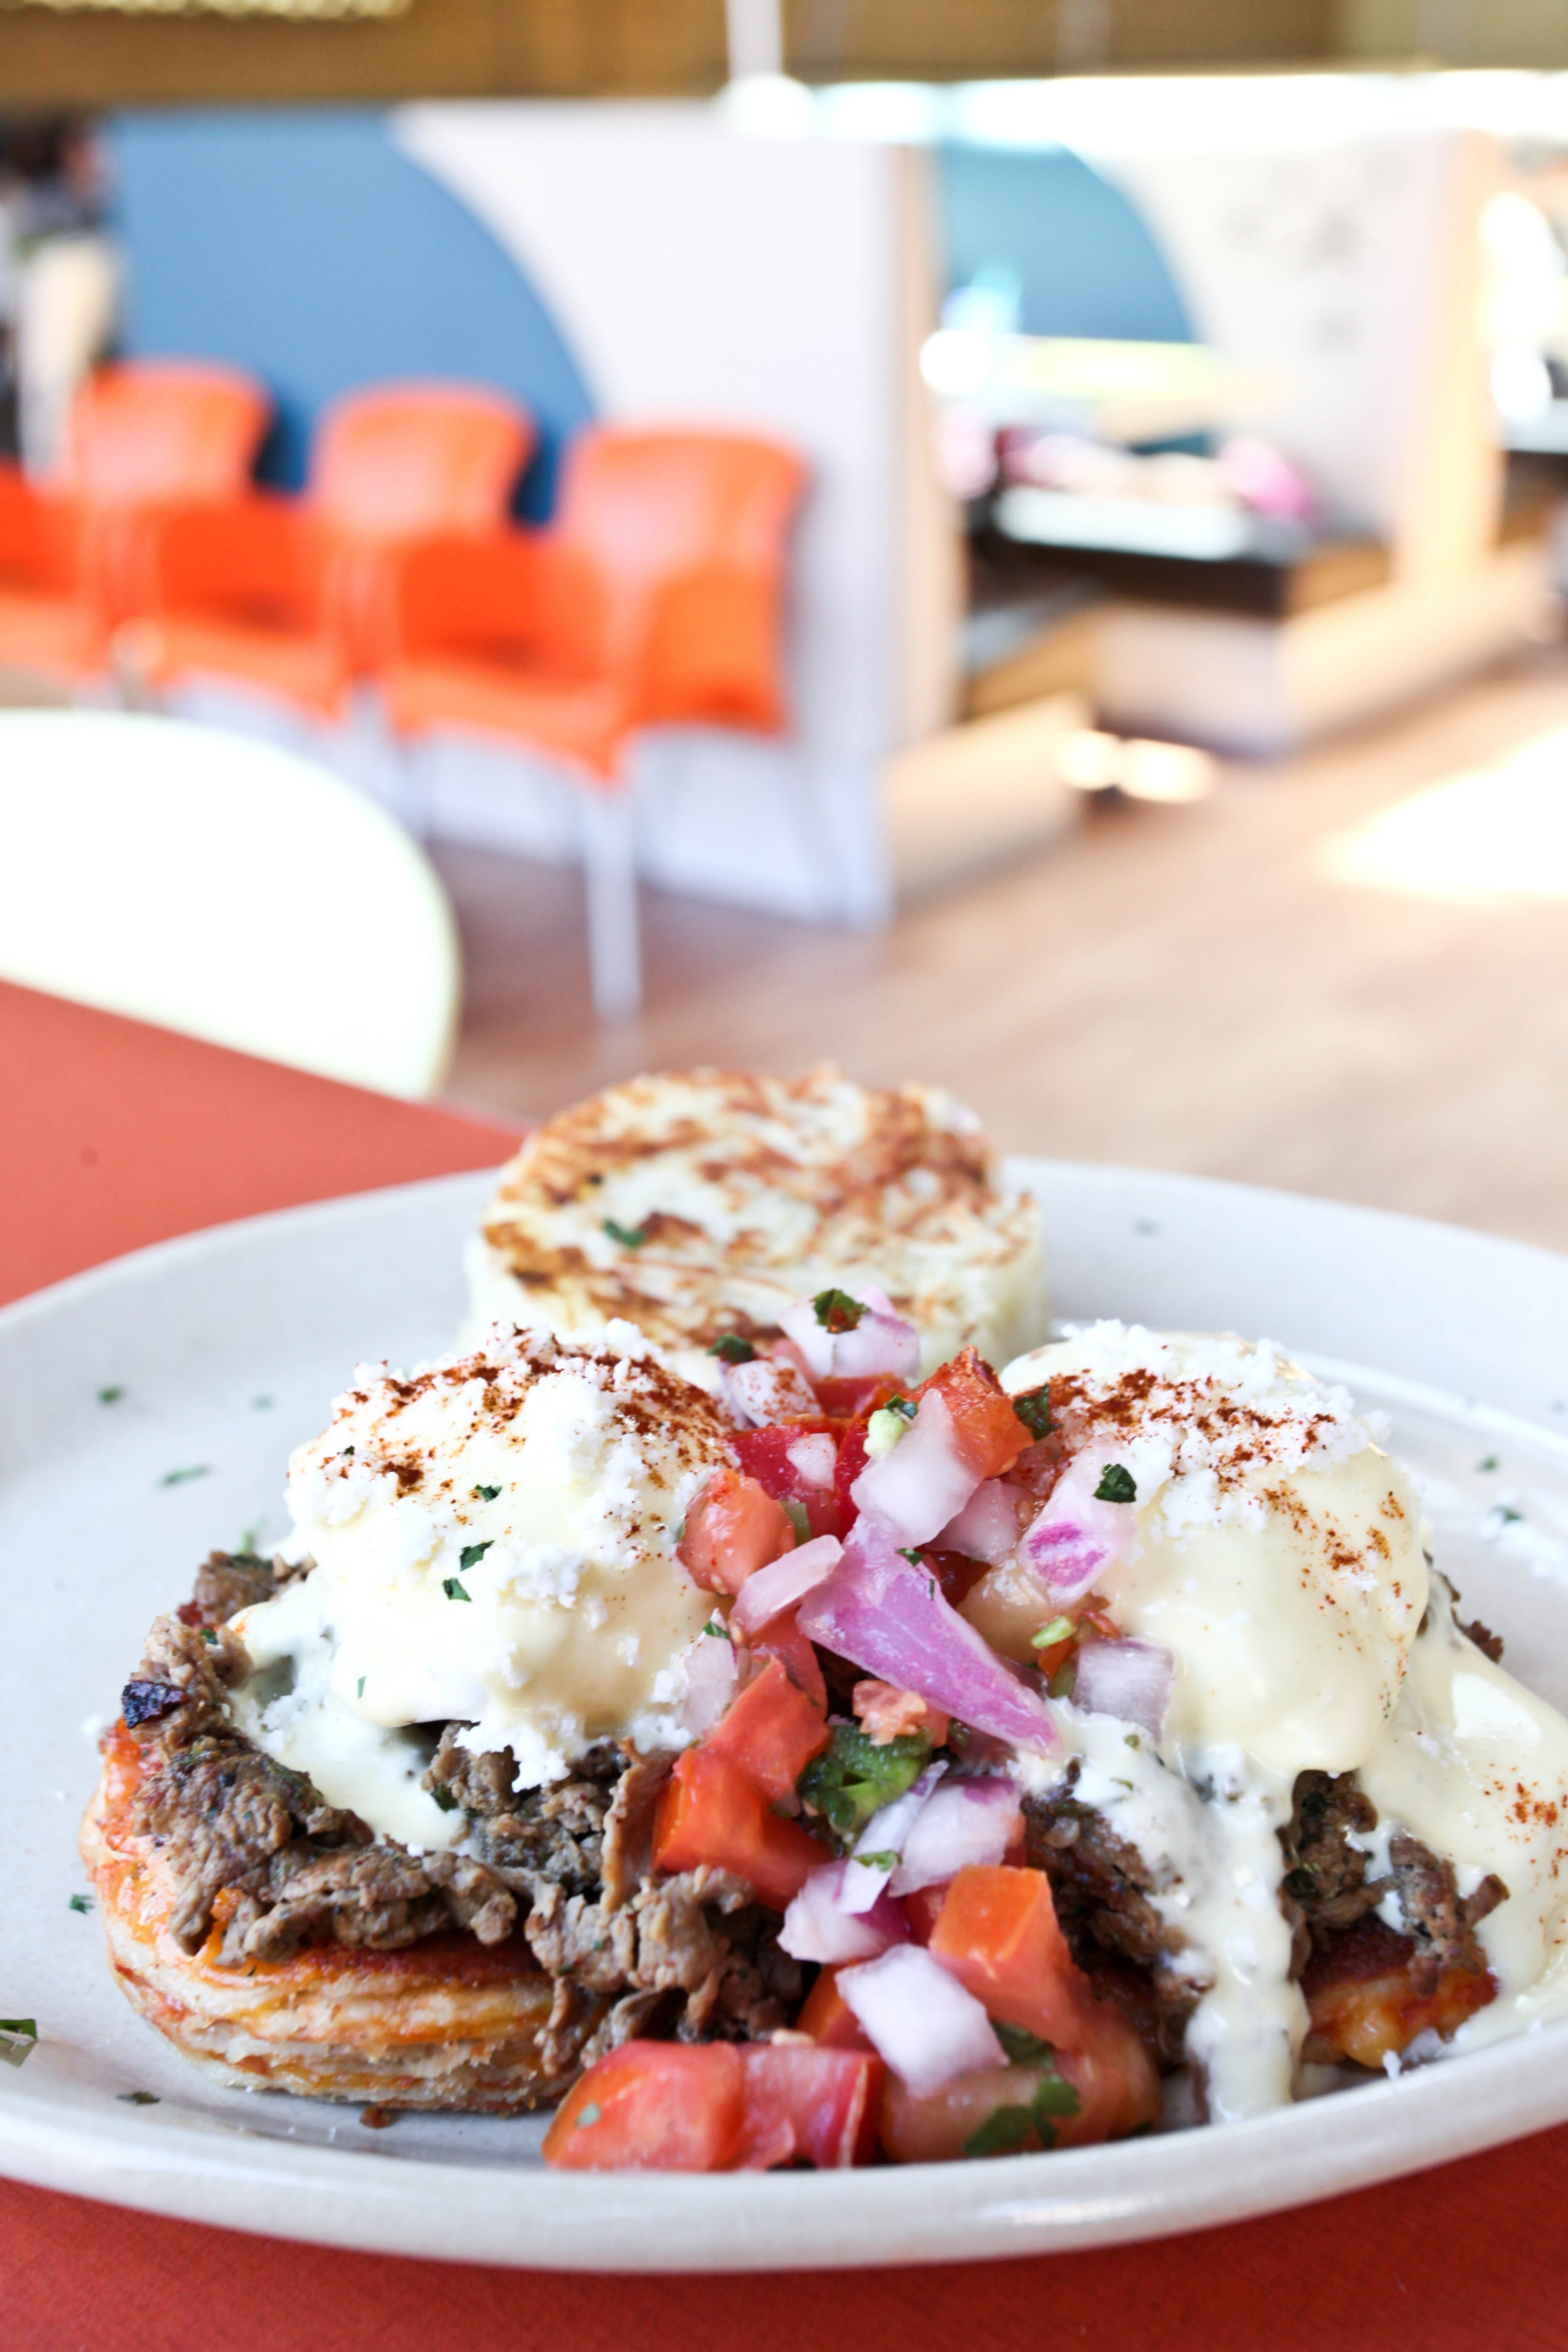 Urban Dish: Breakfast at Hillcrest's Snooze - Urbanist Guide